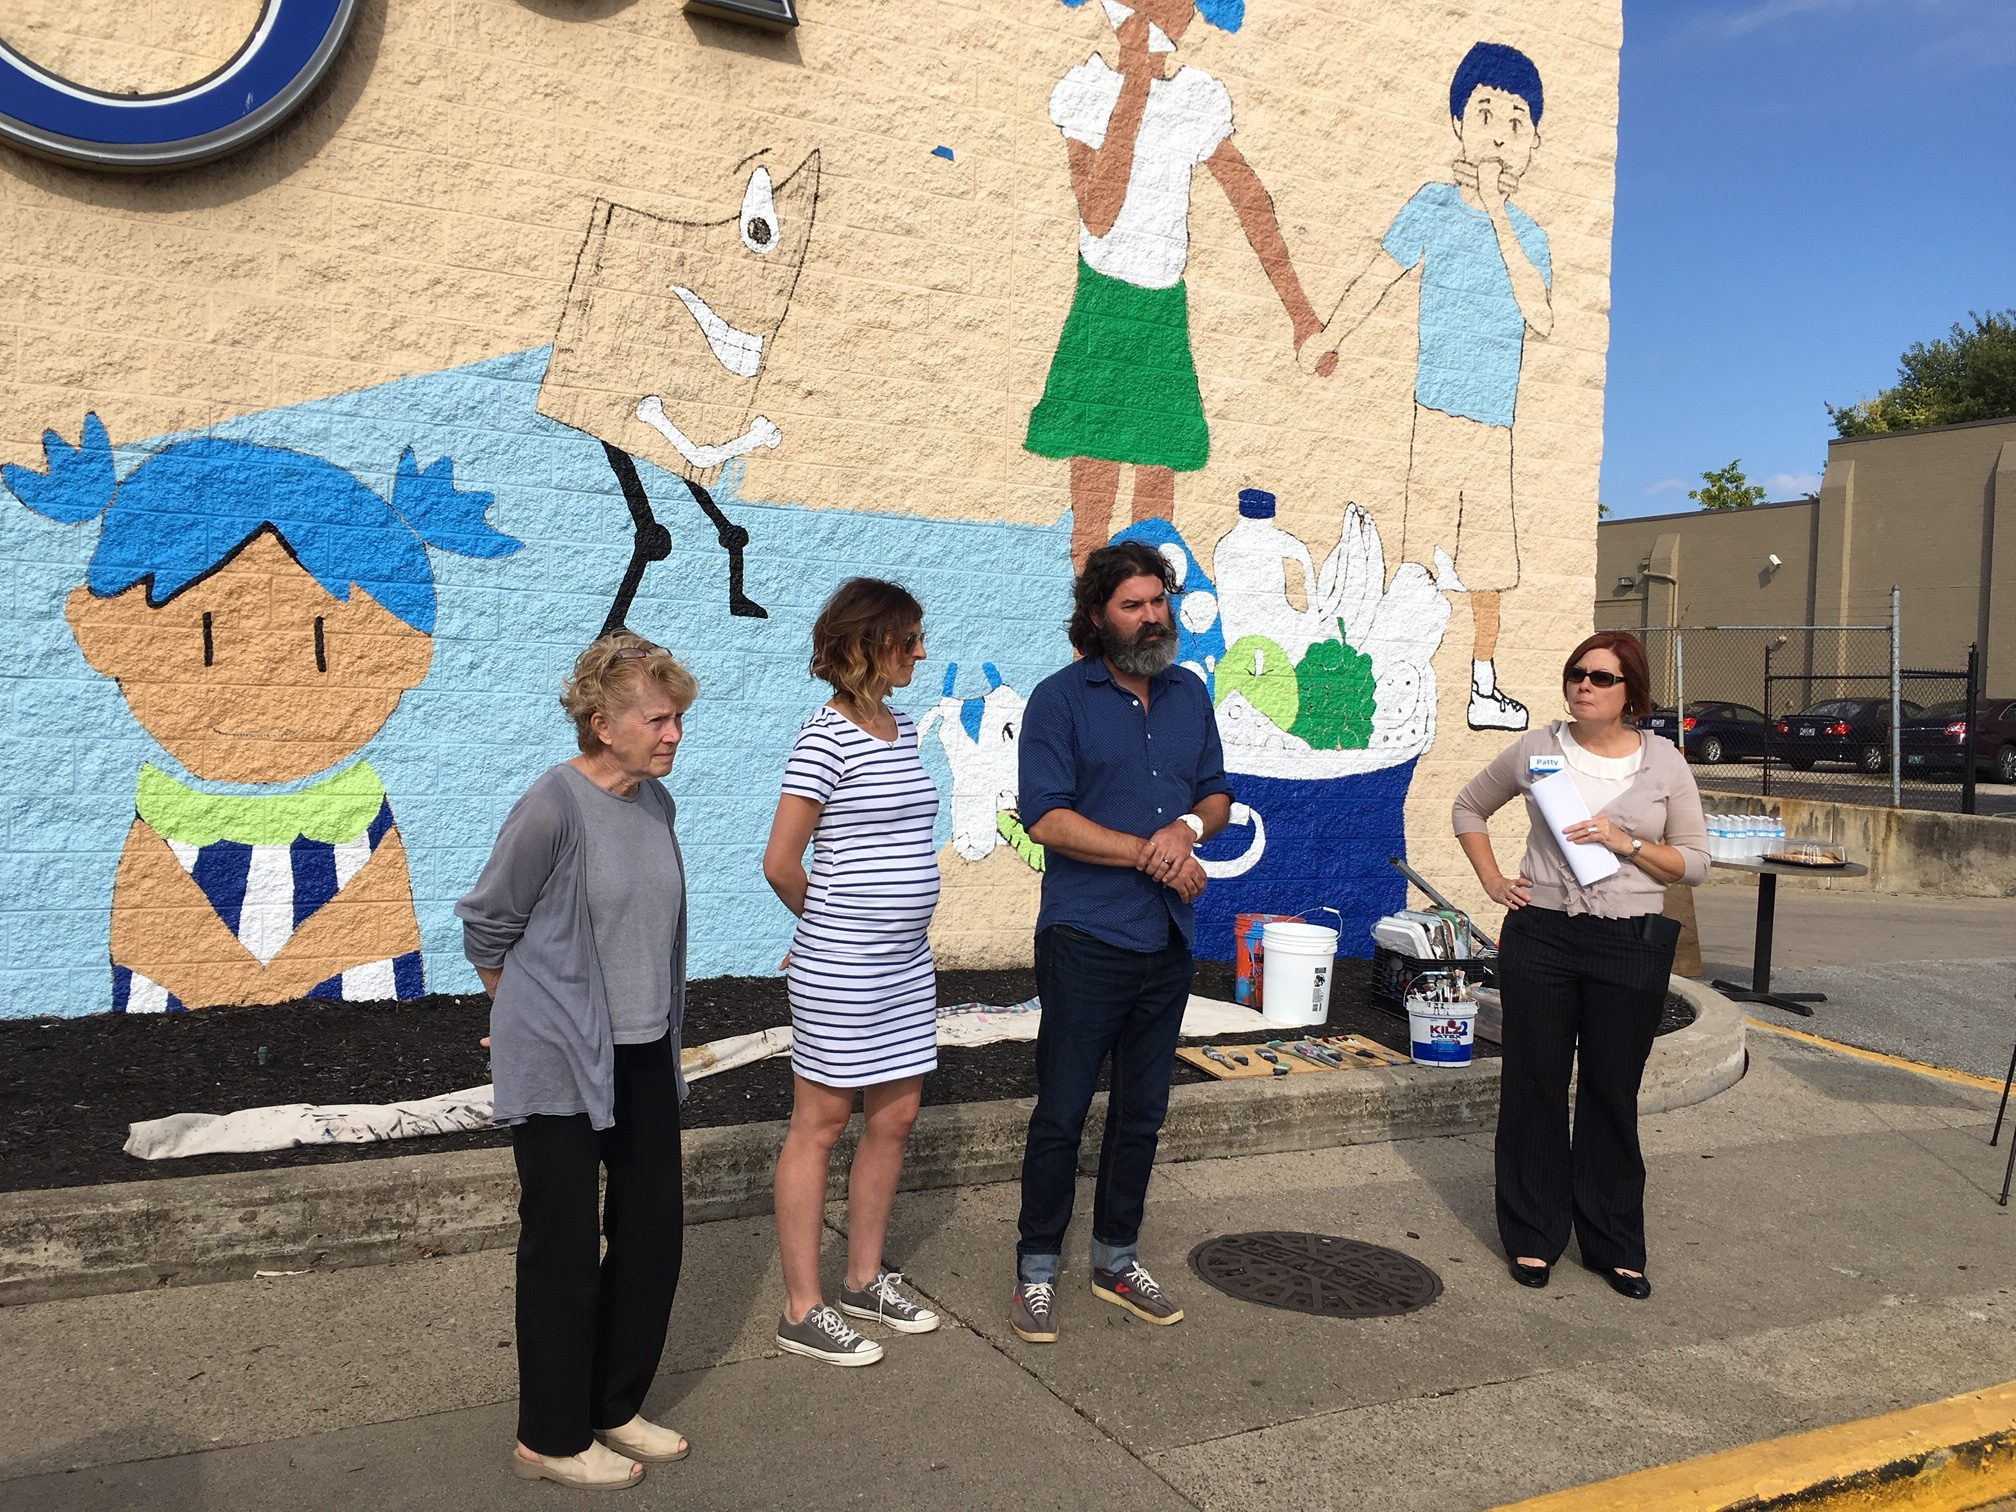 Left to right: Covington Mayor Sherry Carran, joins Lesley Amman and Jarrod Becker of BLDG, and Patty Leeseman of Kroger at Thursday's introduction of the mural.